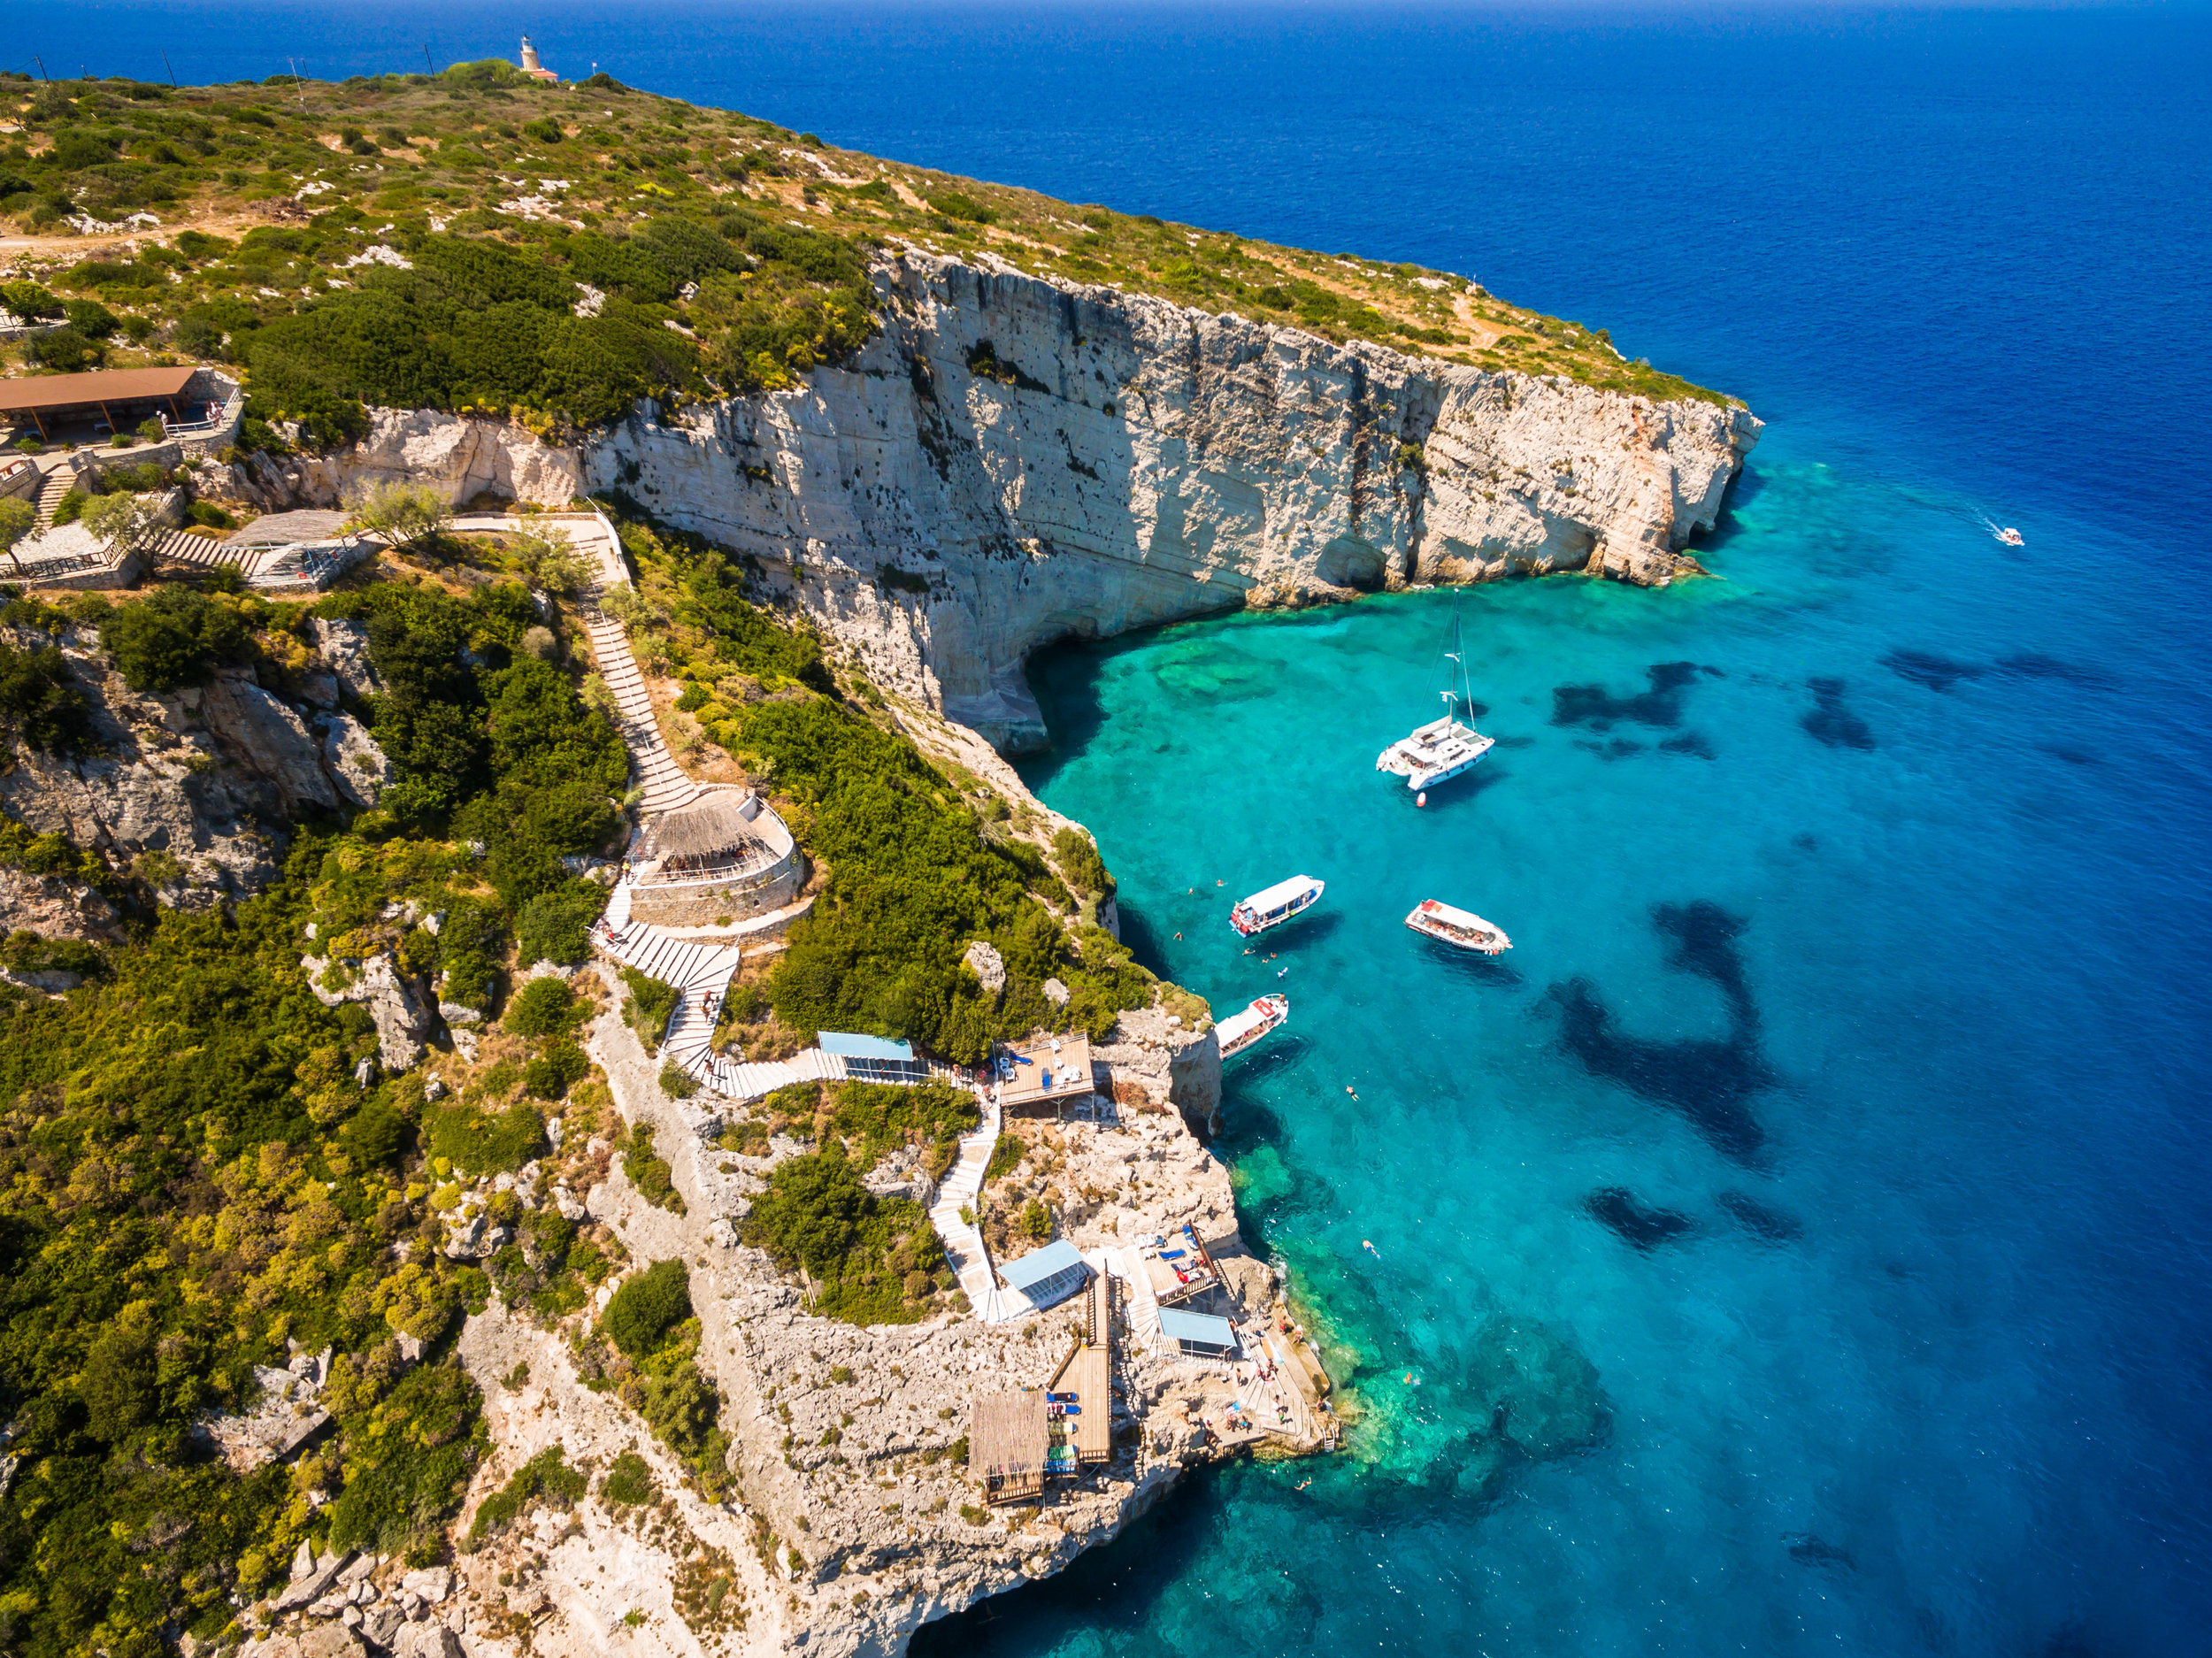 aerial-view-of-agios-nikolaos-blue-caves-in-PSX4W6A.jpg